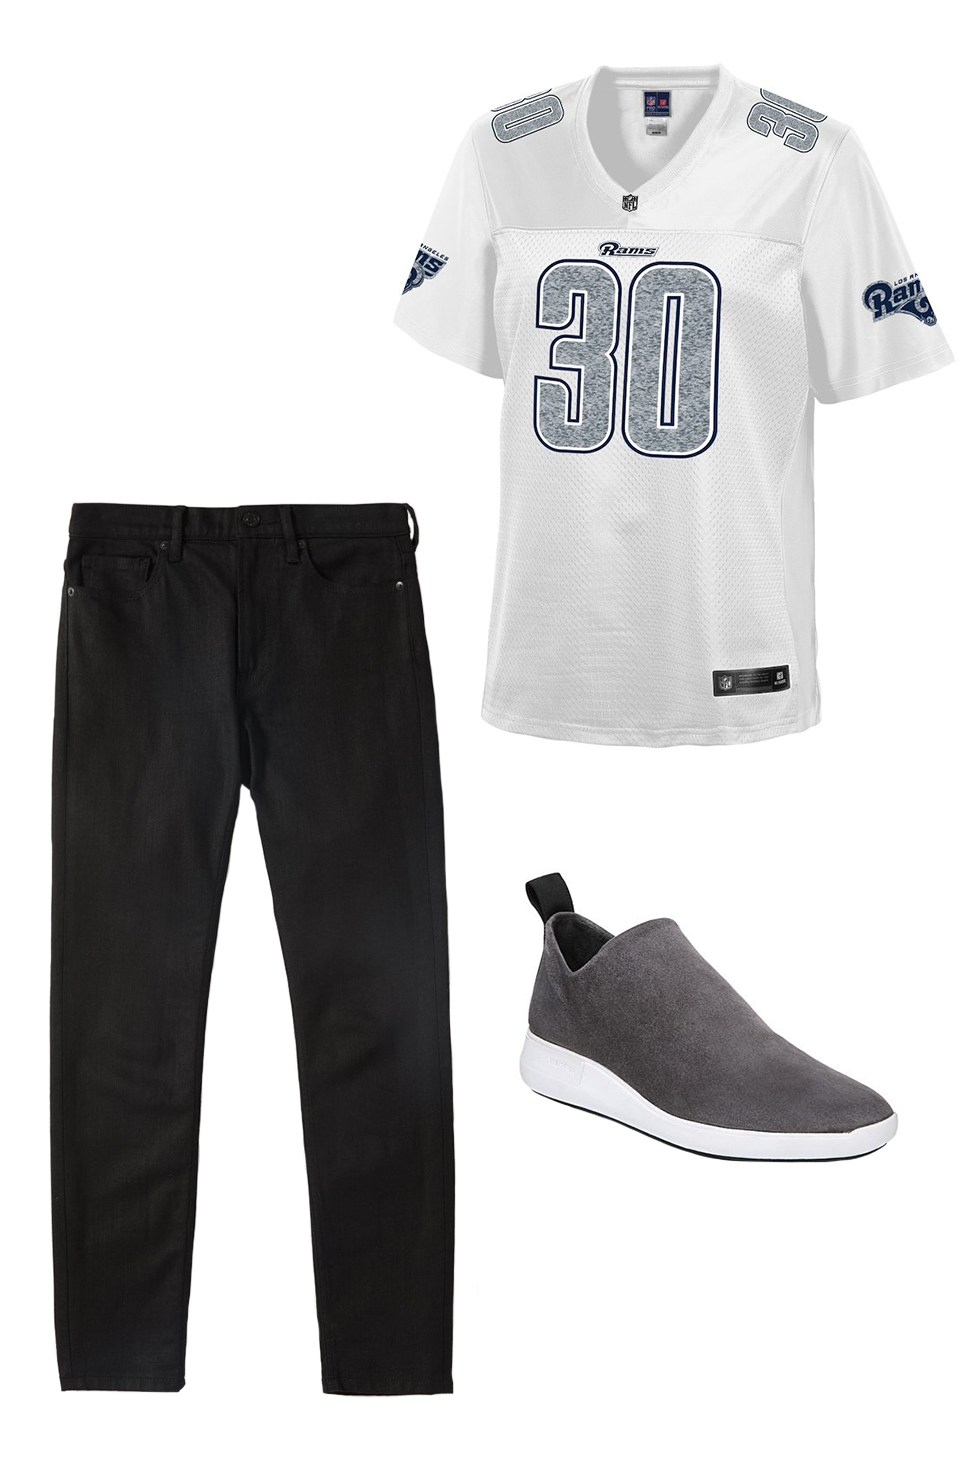 Super Bowl Outfit Ideas What To Wear To A Super Bowl Party